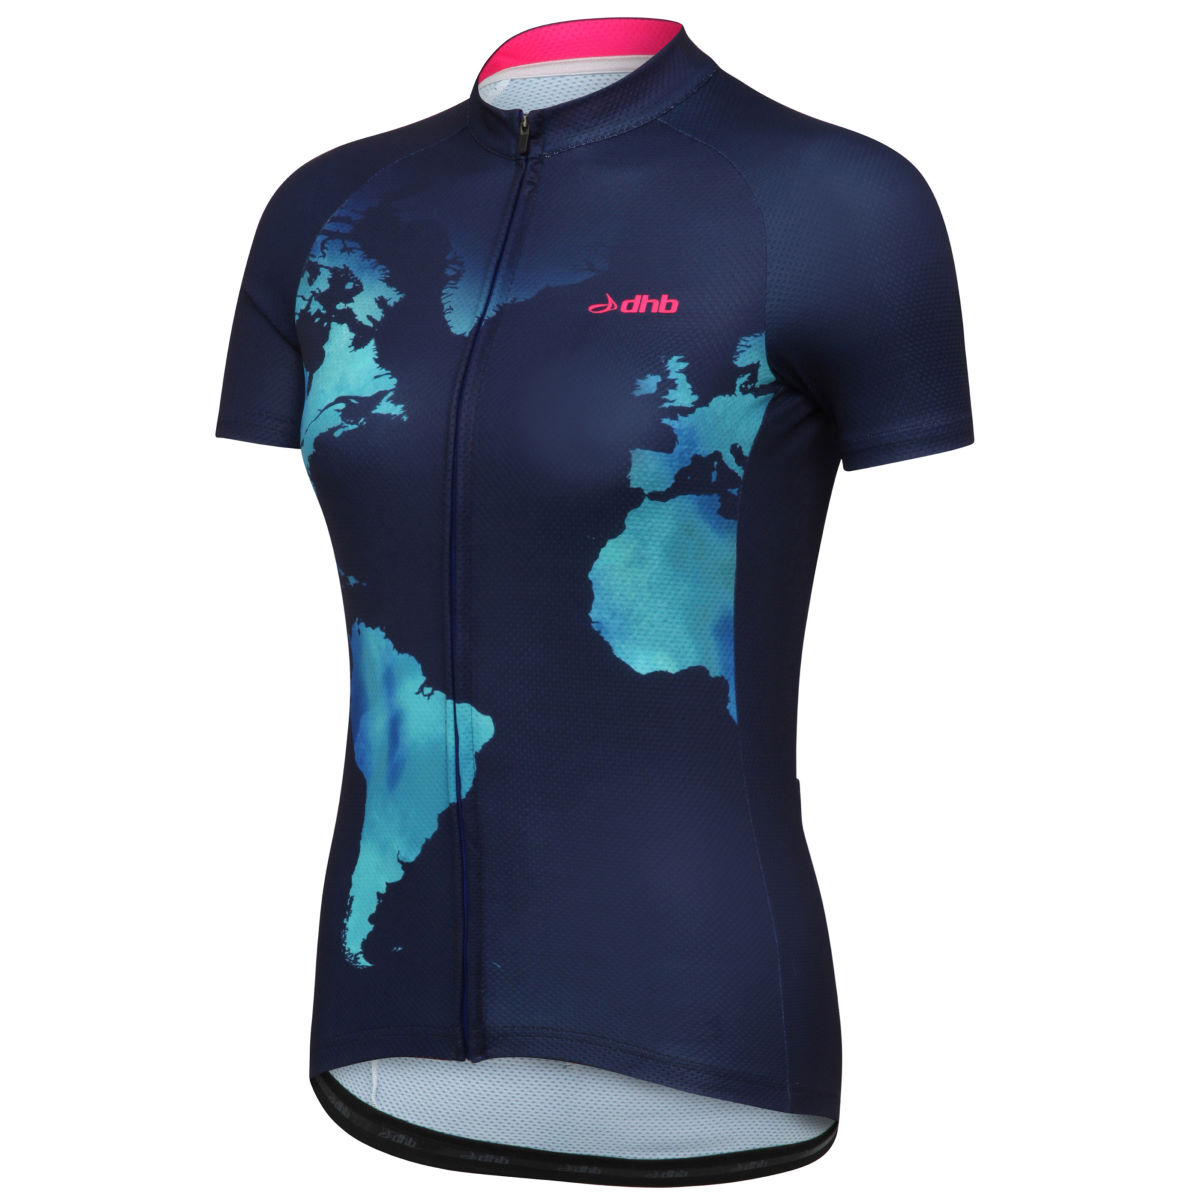 dhb Global Edition Women's Short Sleeve Jersey - UK 8 Blue/Green